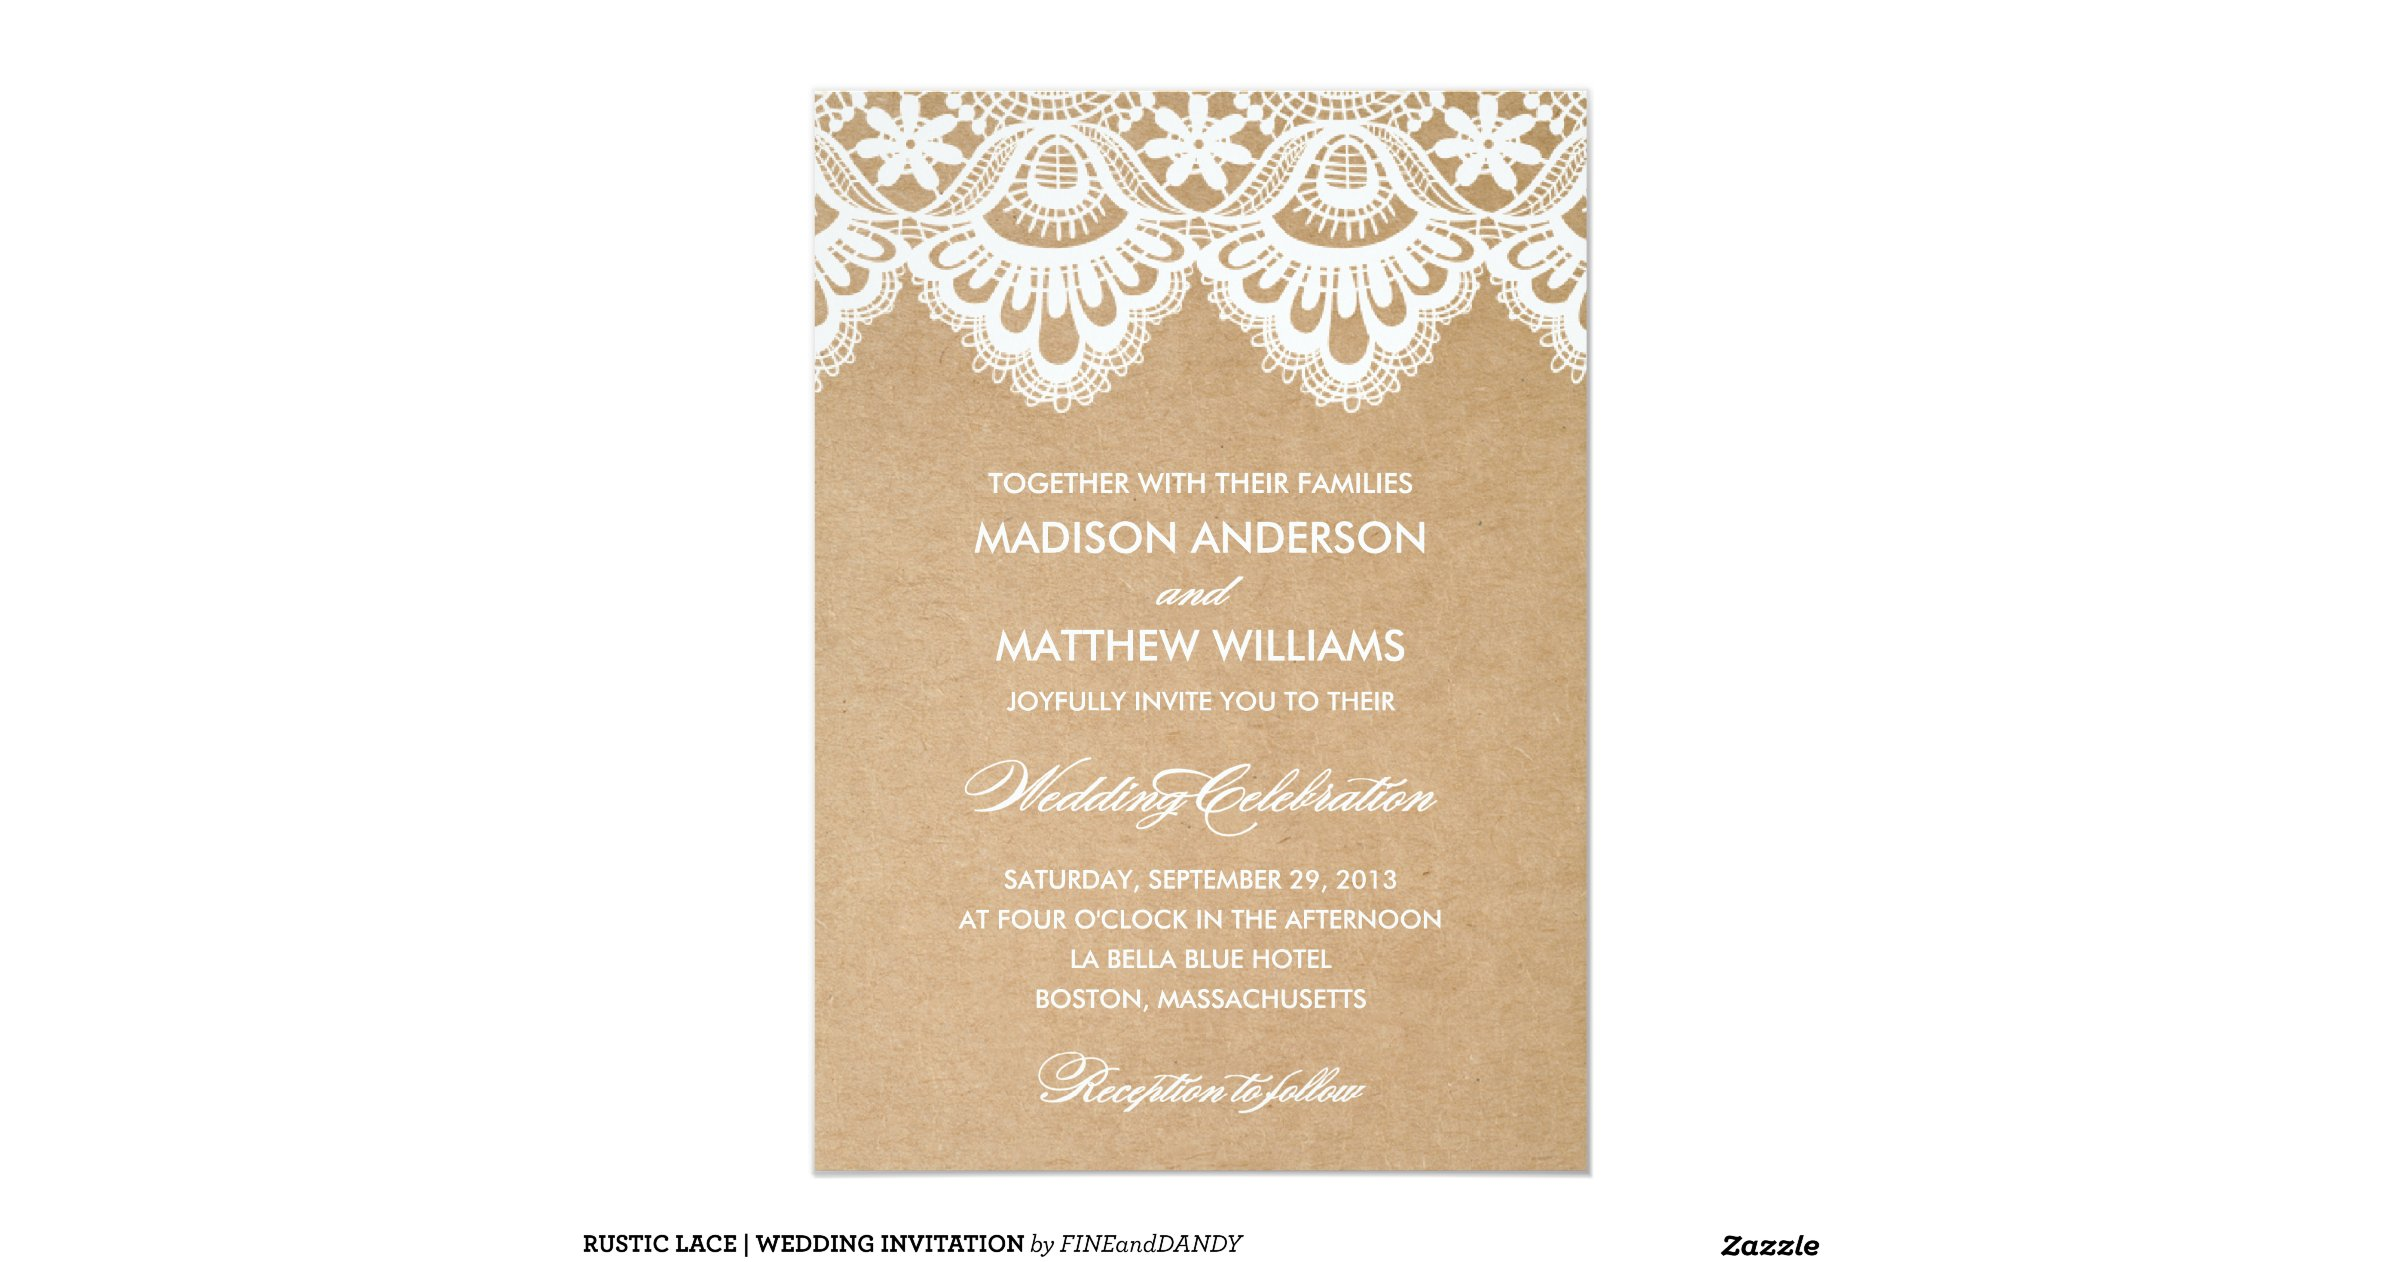 Lace Wedding Invitation: Rustic_lace_wedding_invitation